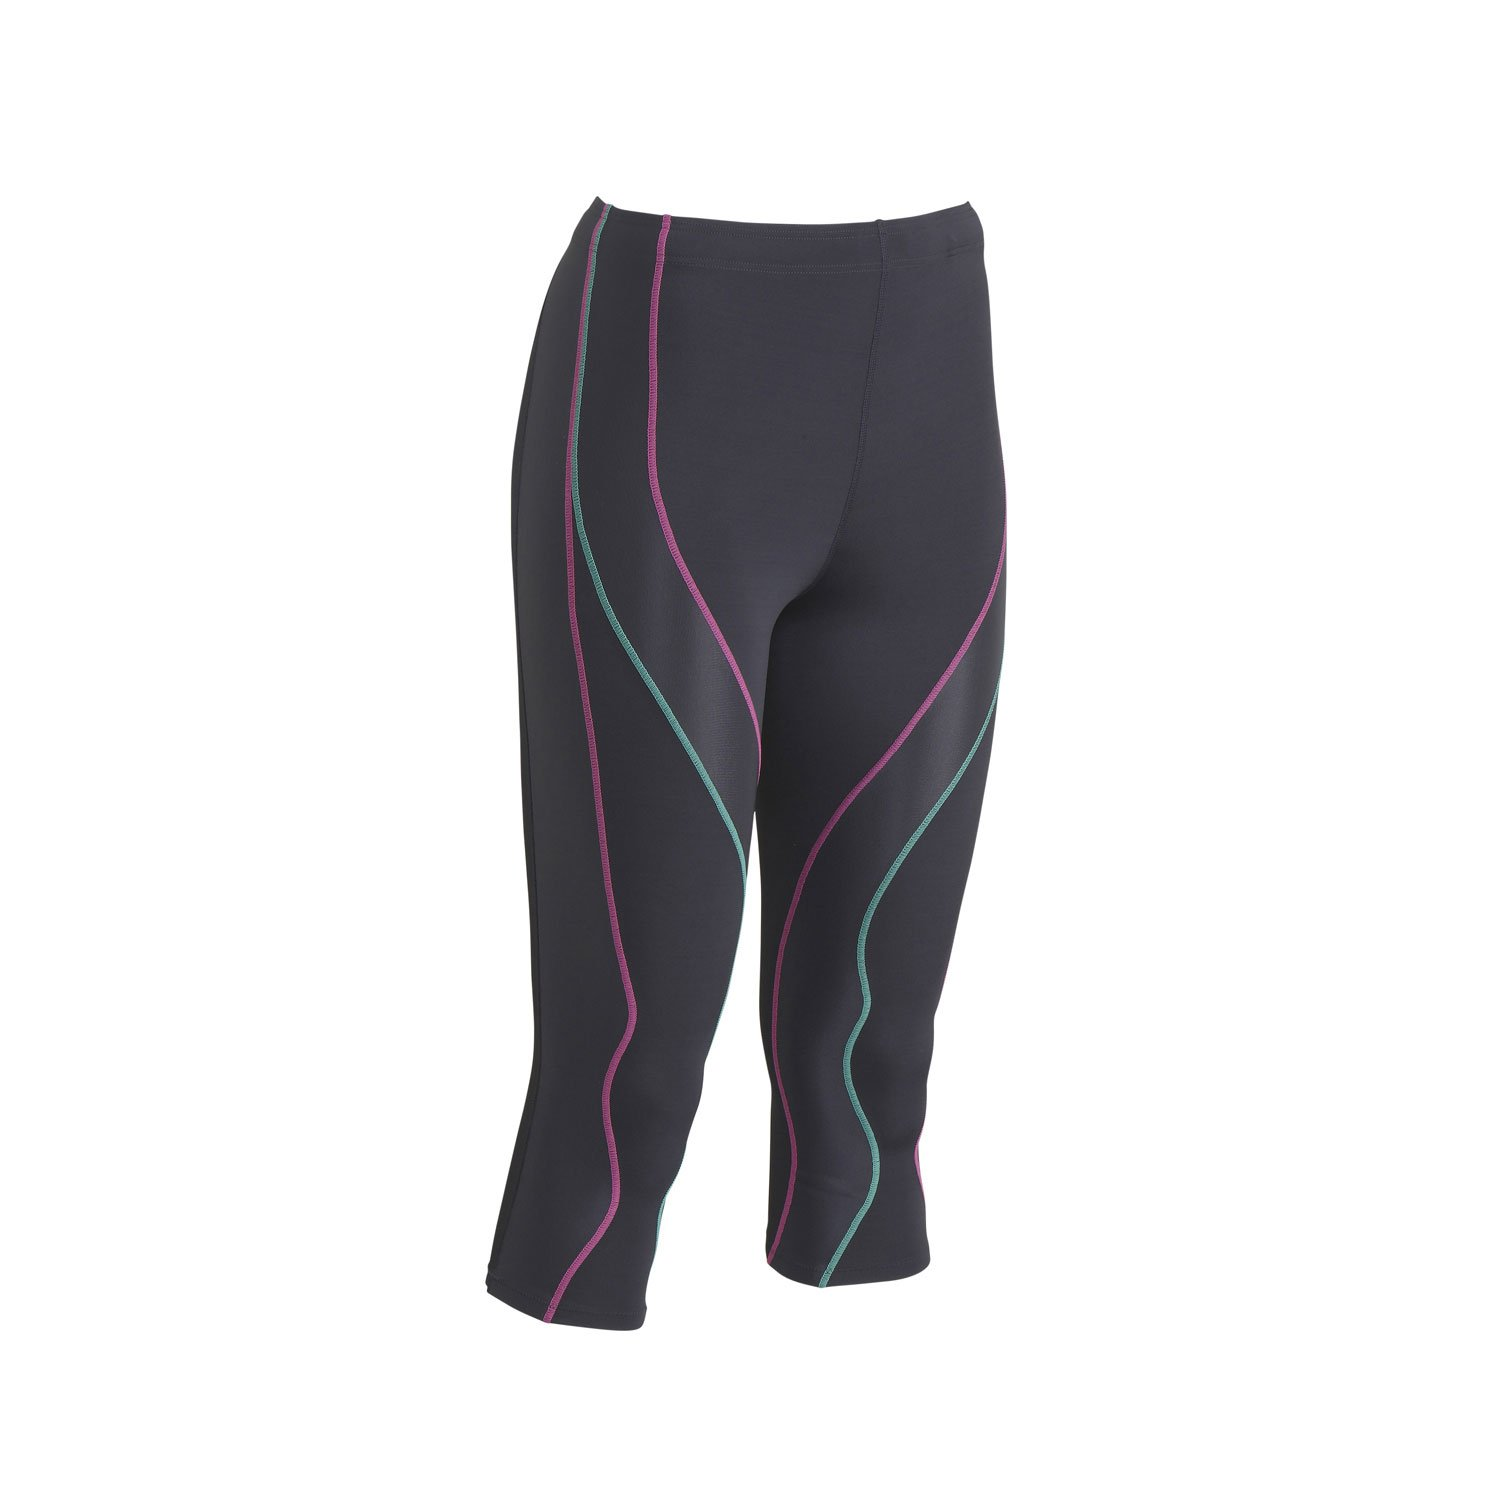 CW-X Women's 3/4 Performx Tights, Grey/Pink/Turquoise, X-Small by CW-X (Image #1)